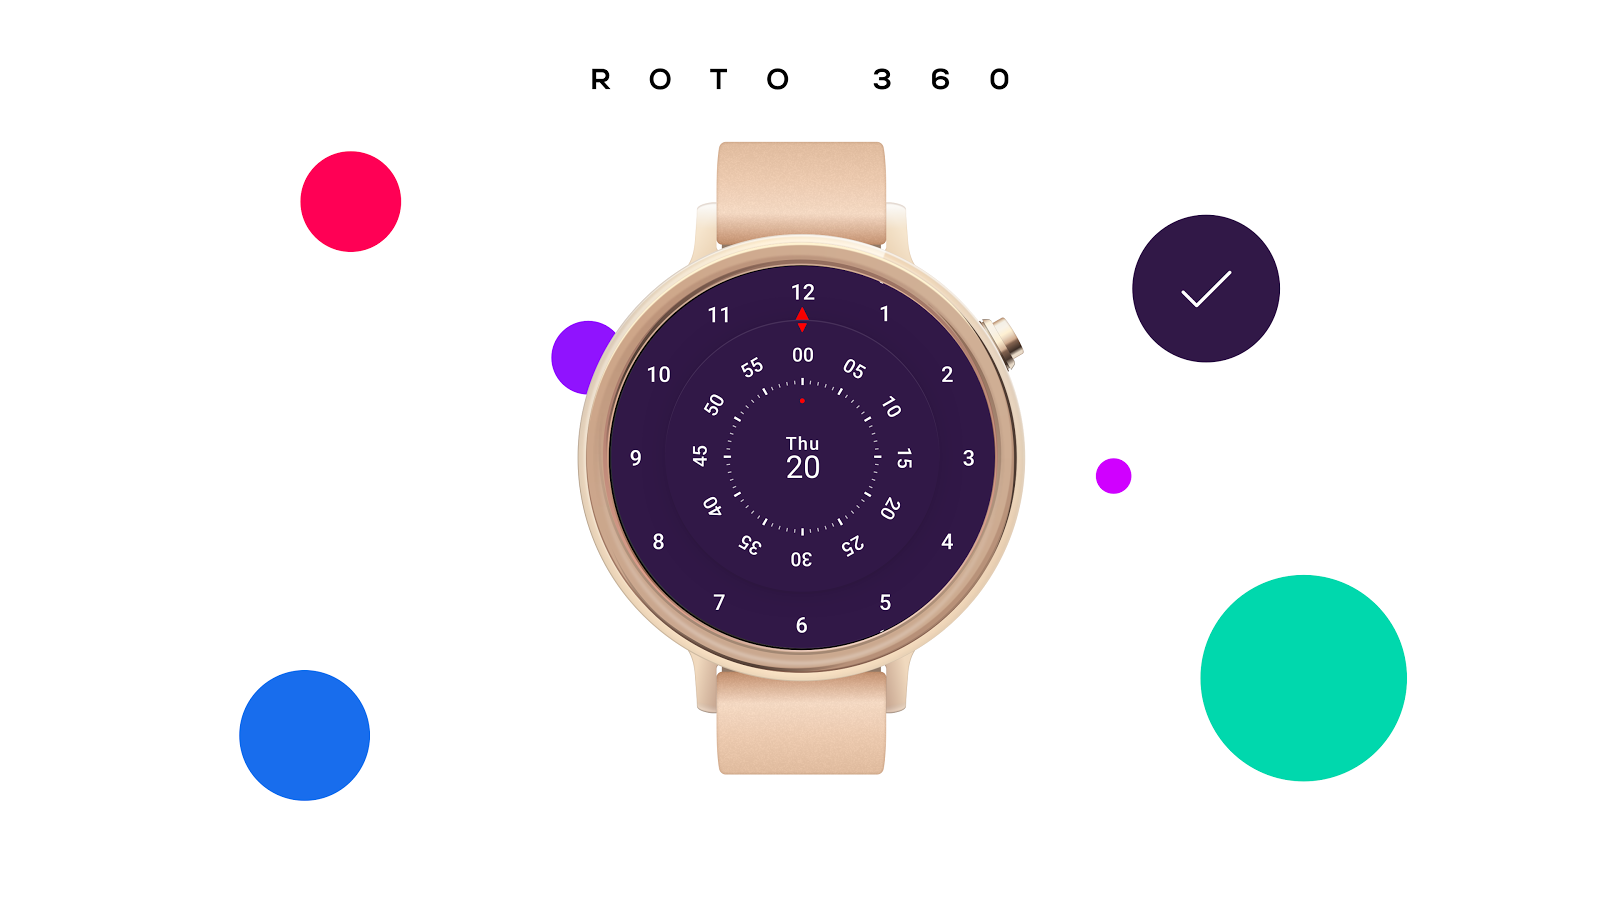 Roto 360 Watch Face For Android Wear Apk Download Circuit Board Clock V 10 G Facerepo Screenshot 1